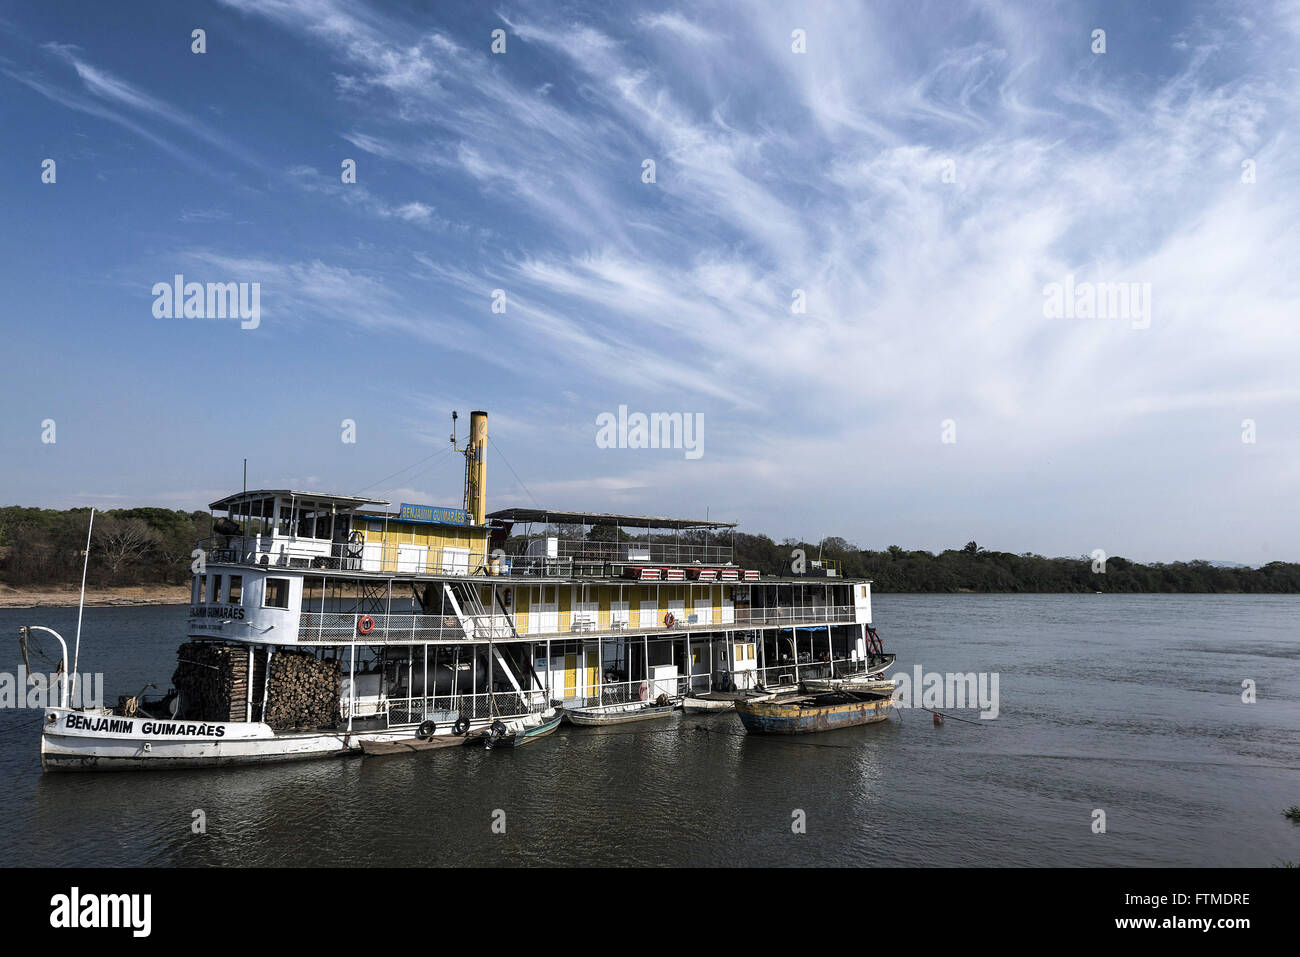 Steamboat approaching dry area of Rio Sao Francisco - Stock Image